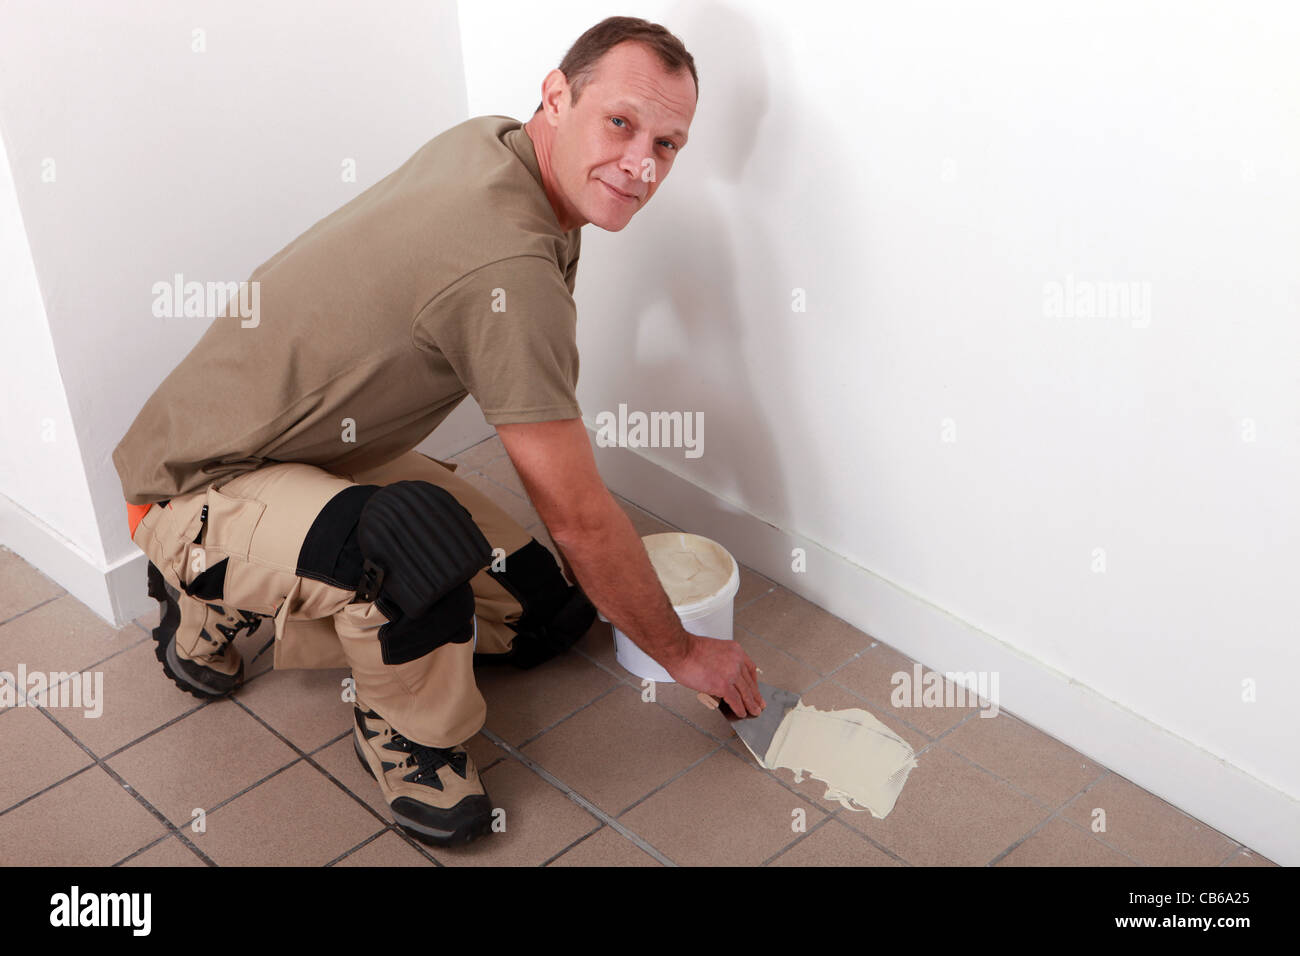 Adhesive Spreader Stock Photos Adhesive Spreader Stock Images Alamy